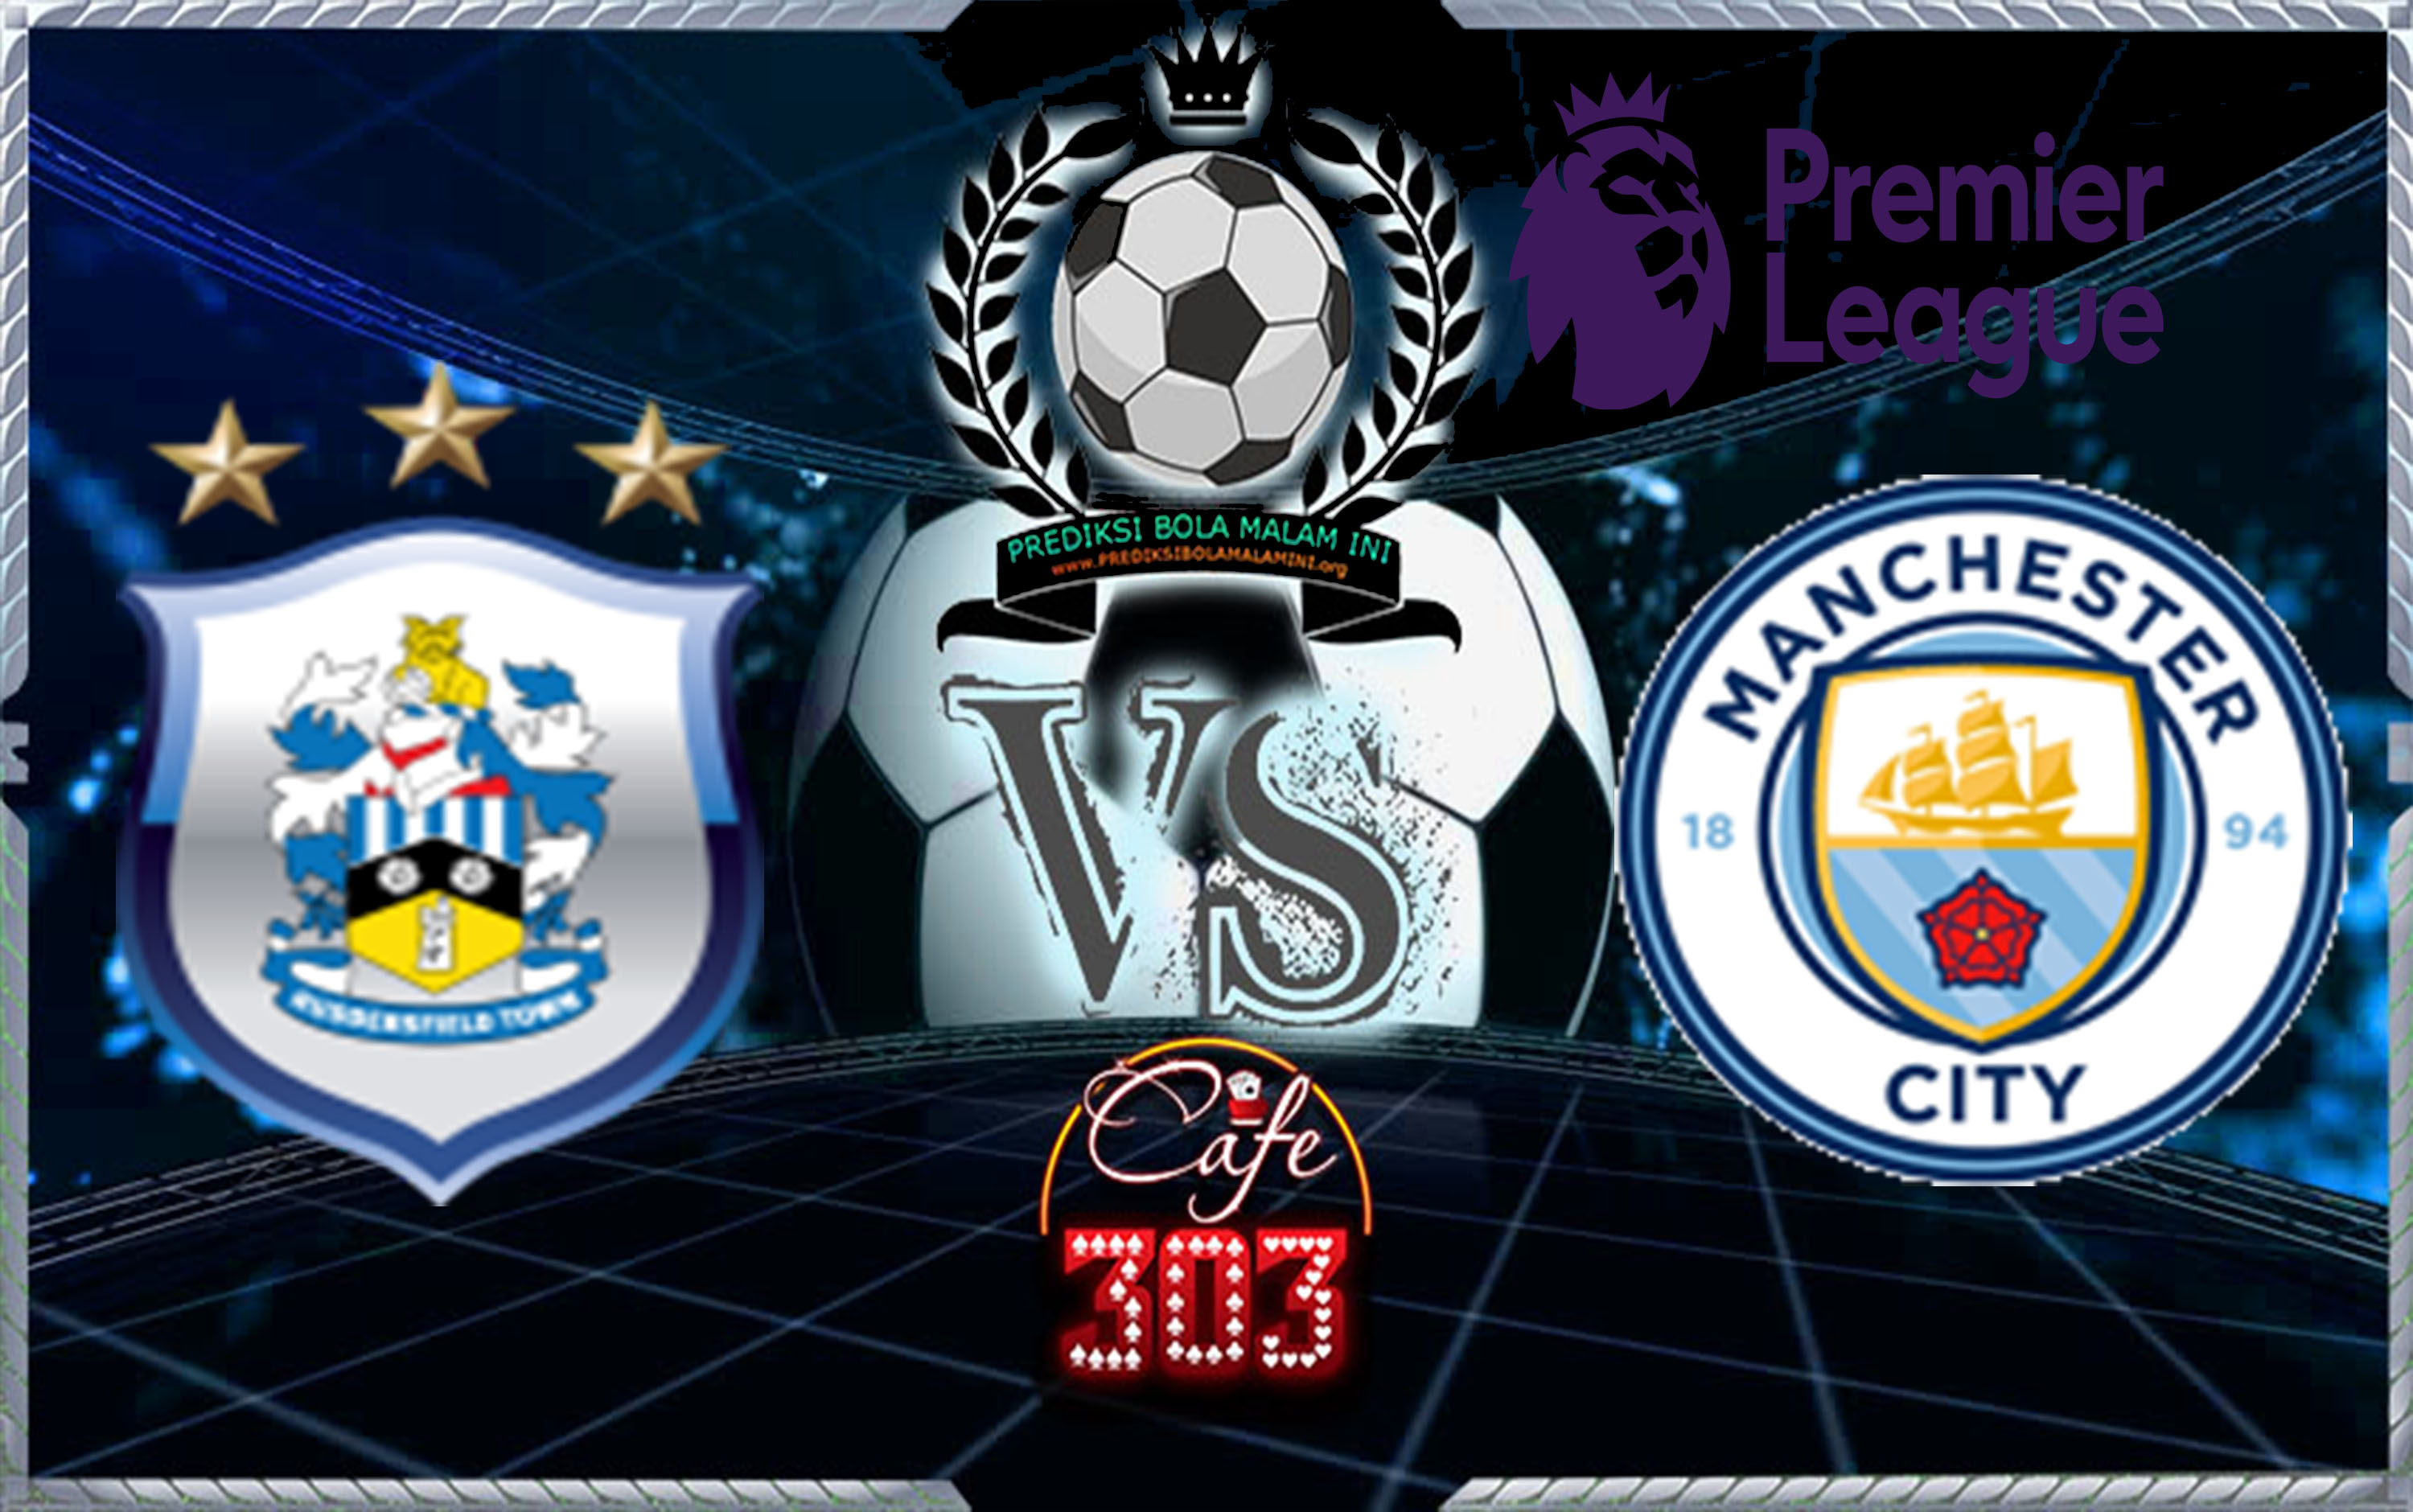 Prediksi Sepatu HUDDERSFIELD KOTA MANCHESTER TOWNV 26 November 2017 &quot;width =&quot; 640 &quot;height =&quot; 401 &quot;/&gt; </p> <p> <span style=